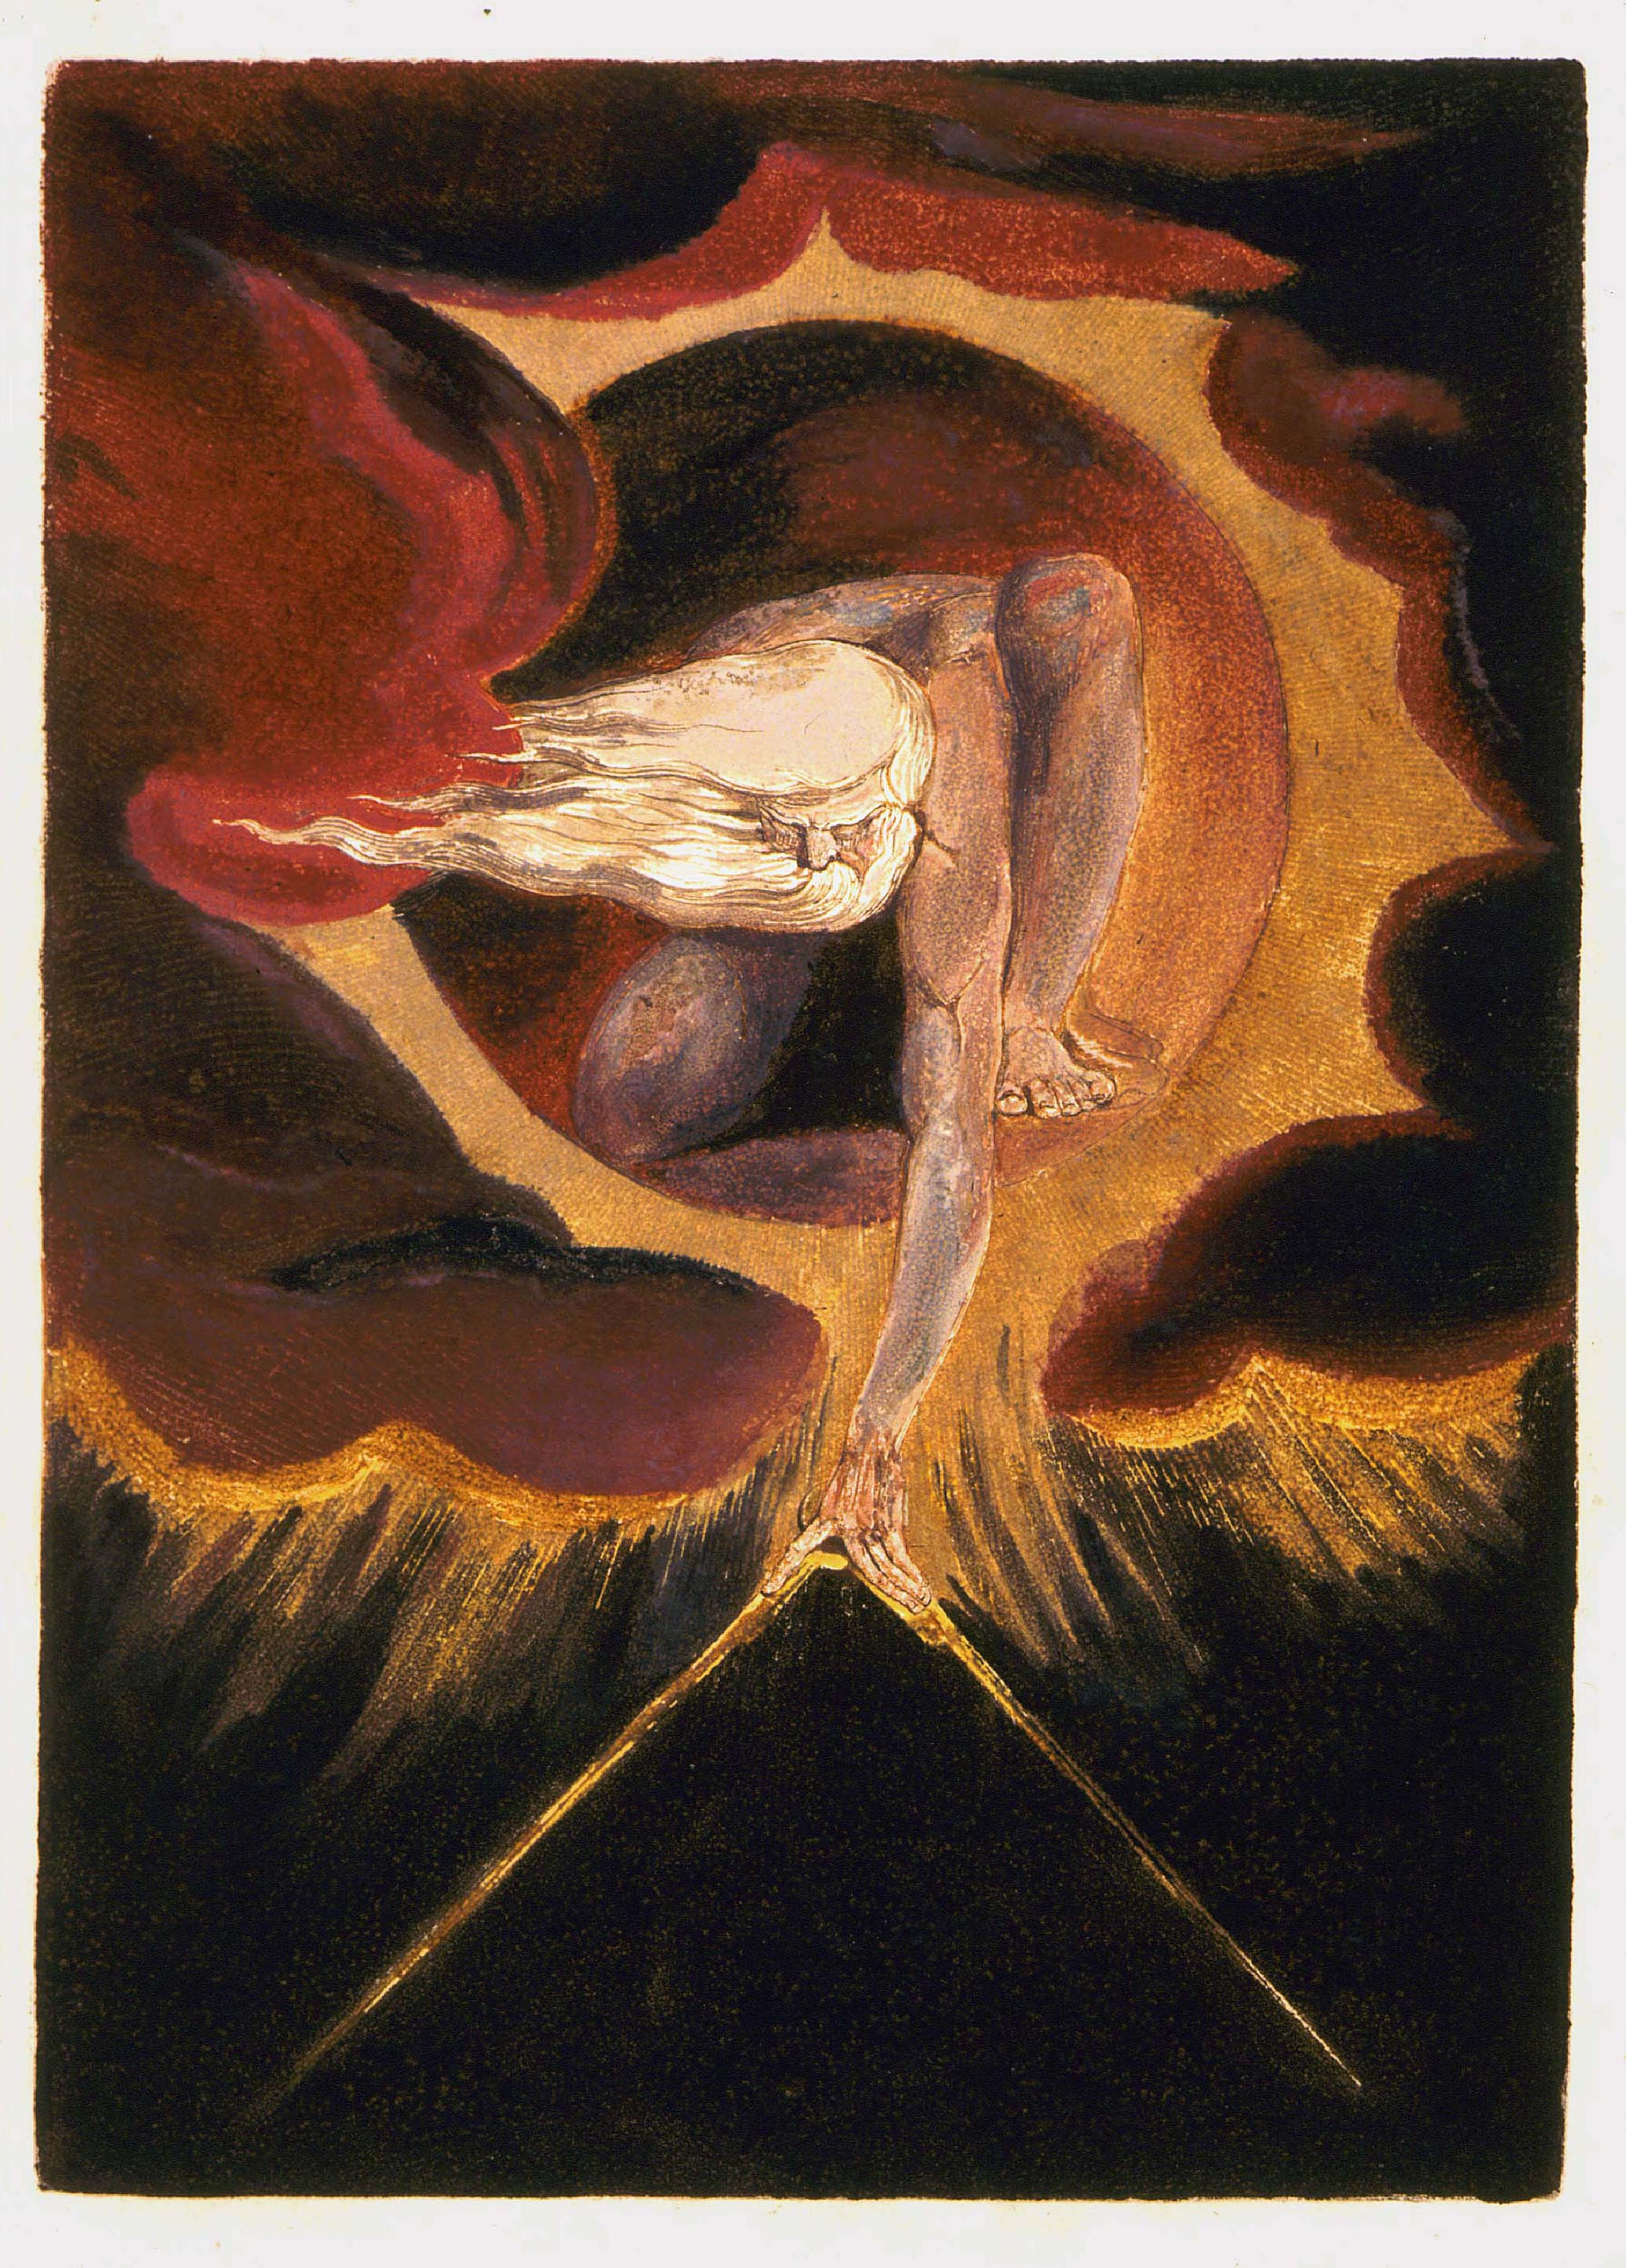 a biography of william blake a seminal figure in poetry and visual arts of the romantic age